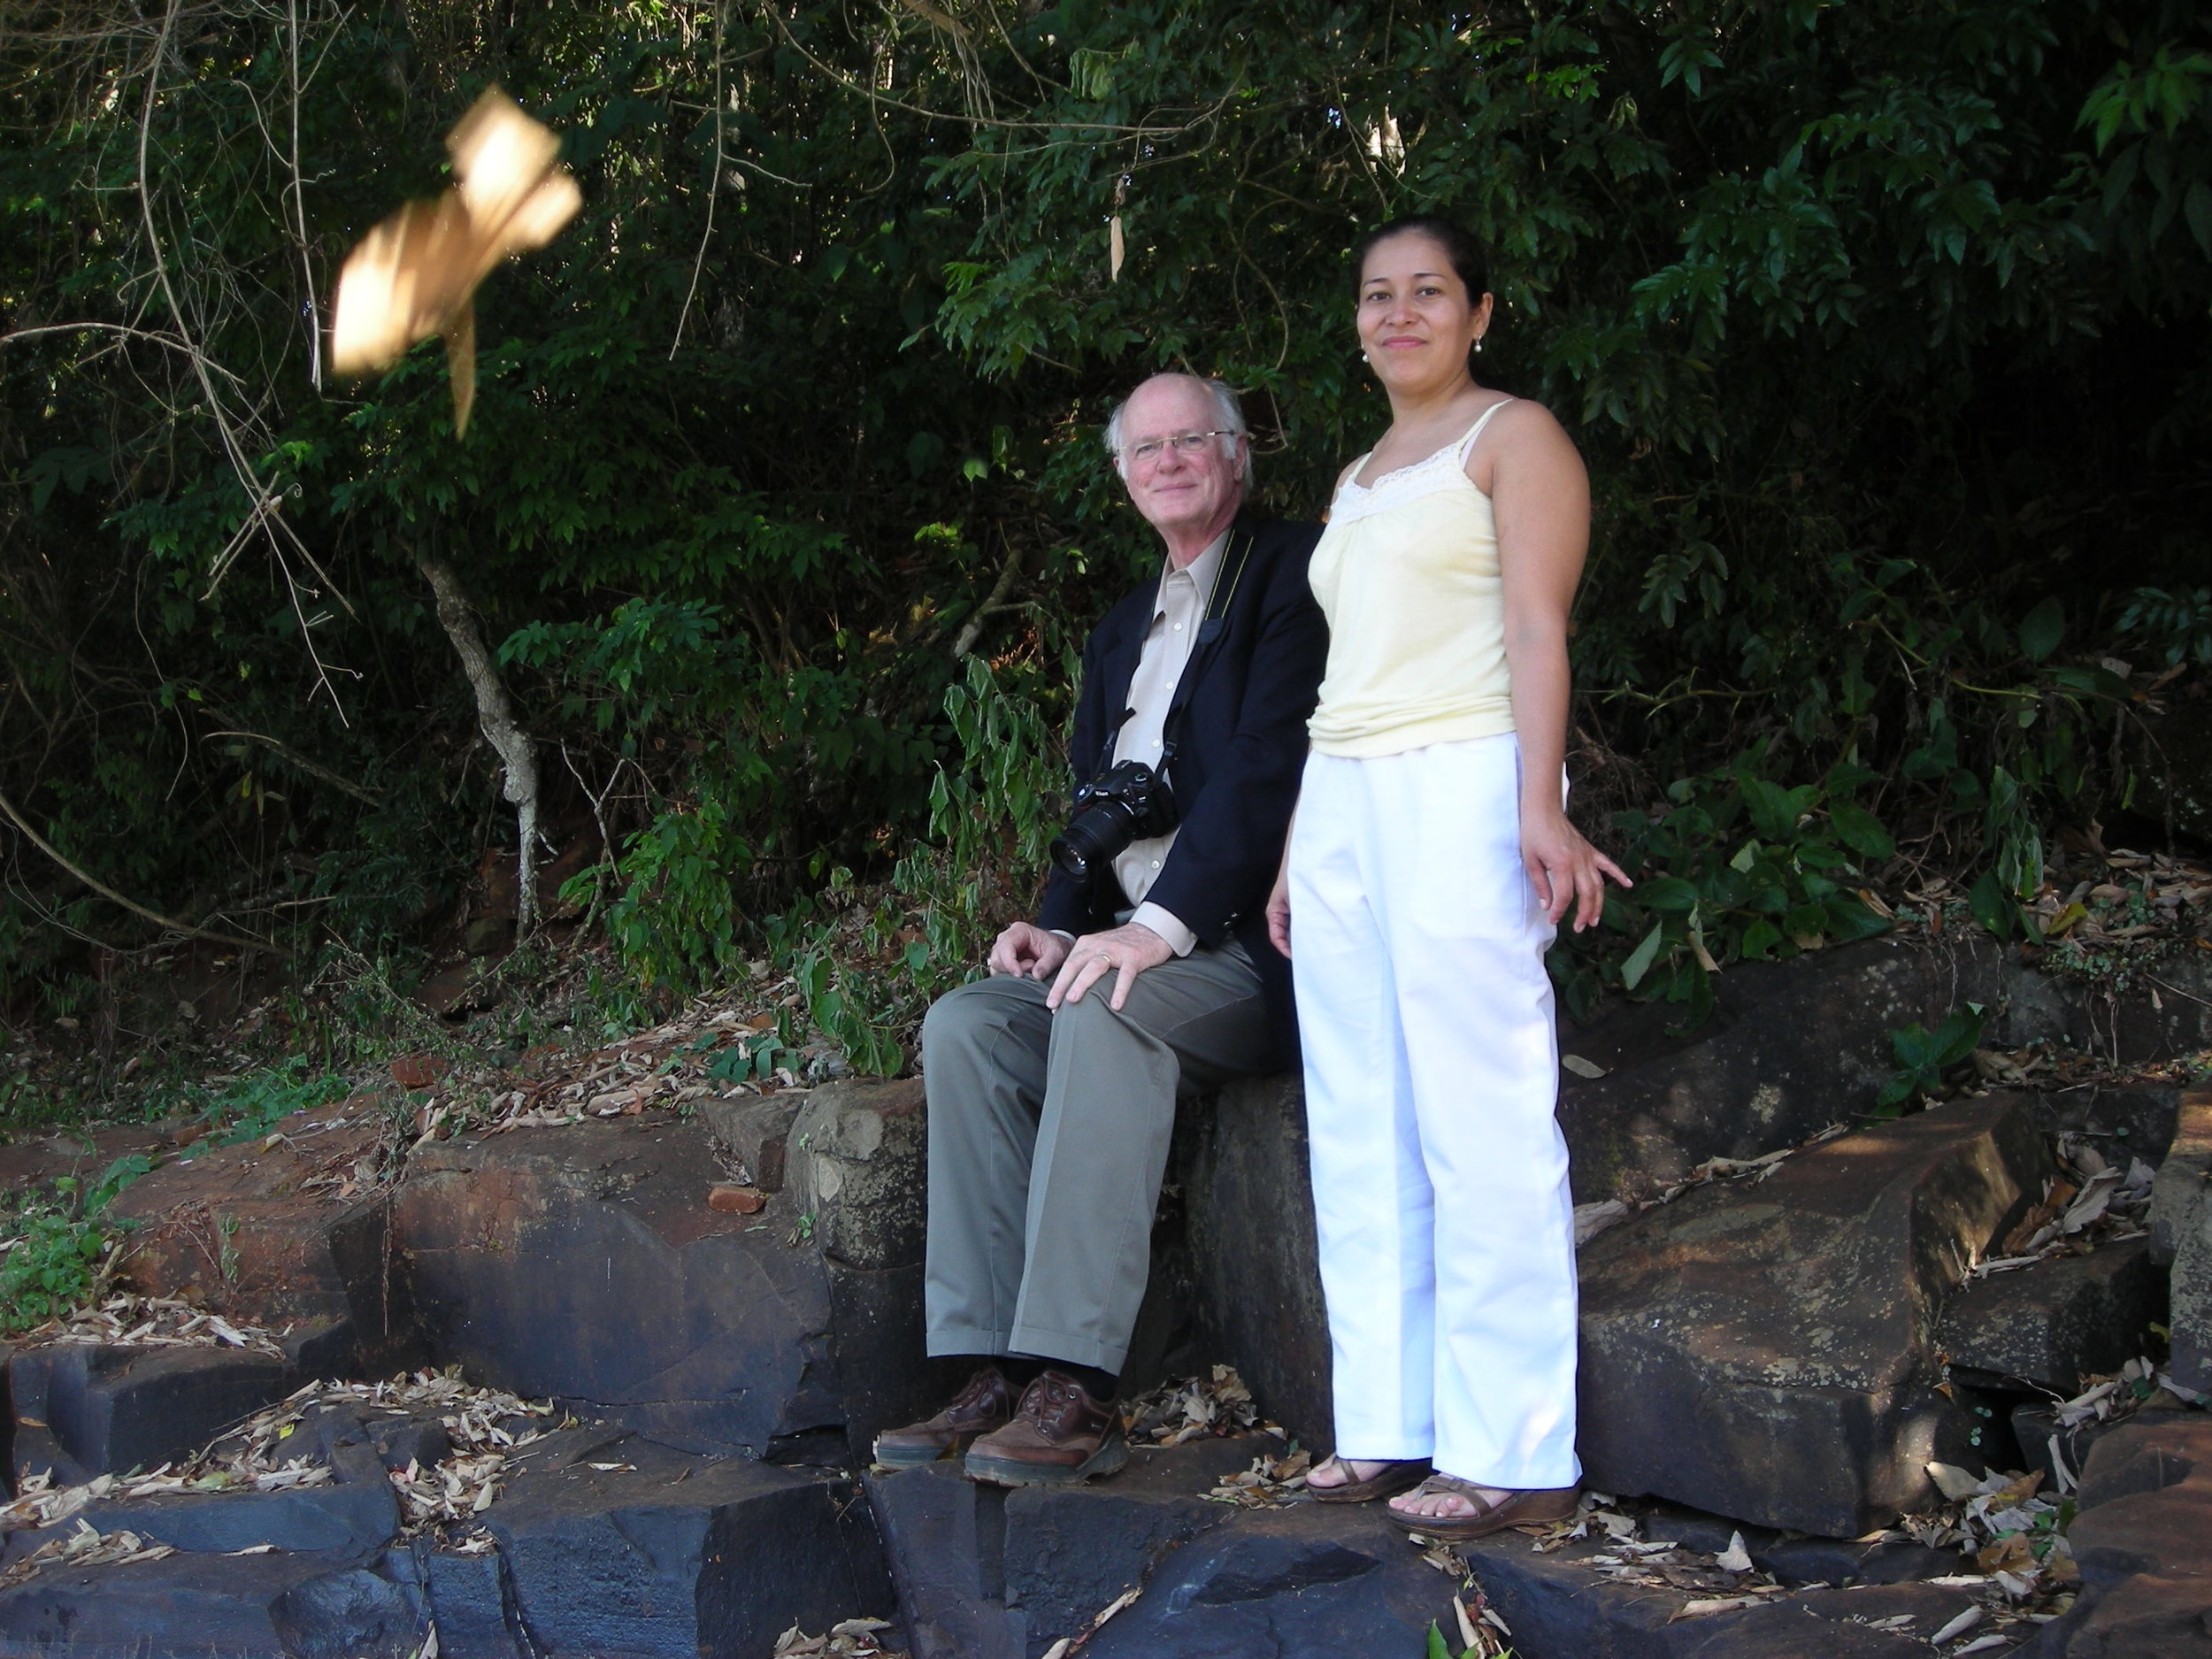 Mr. Raymond White relaxing with Dra. Marly Nizza before getting at the assessment site